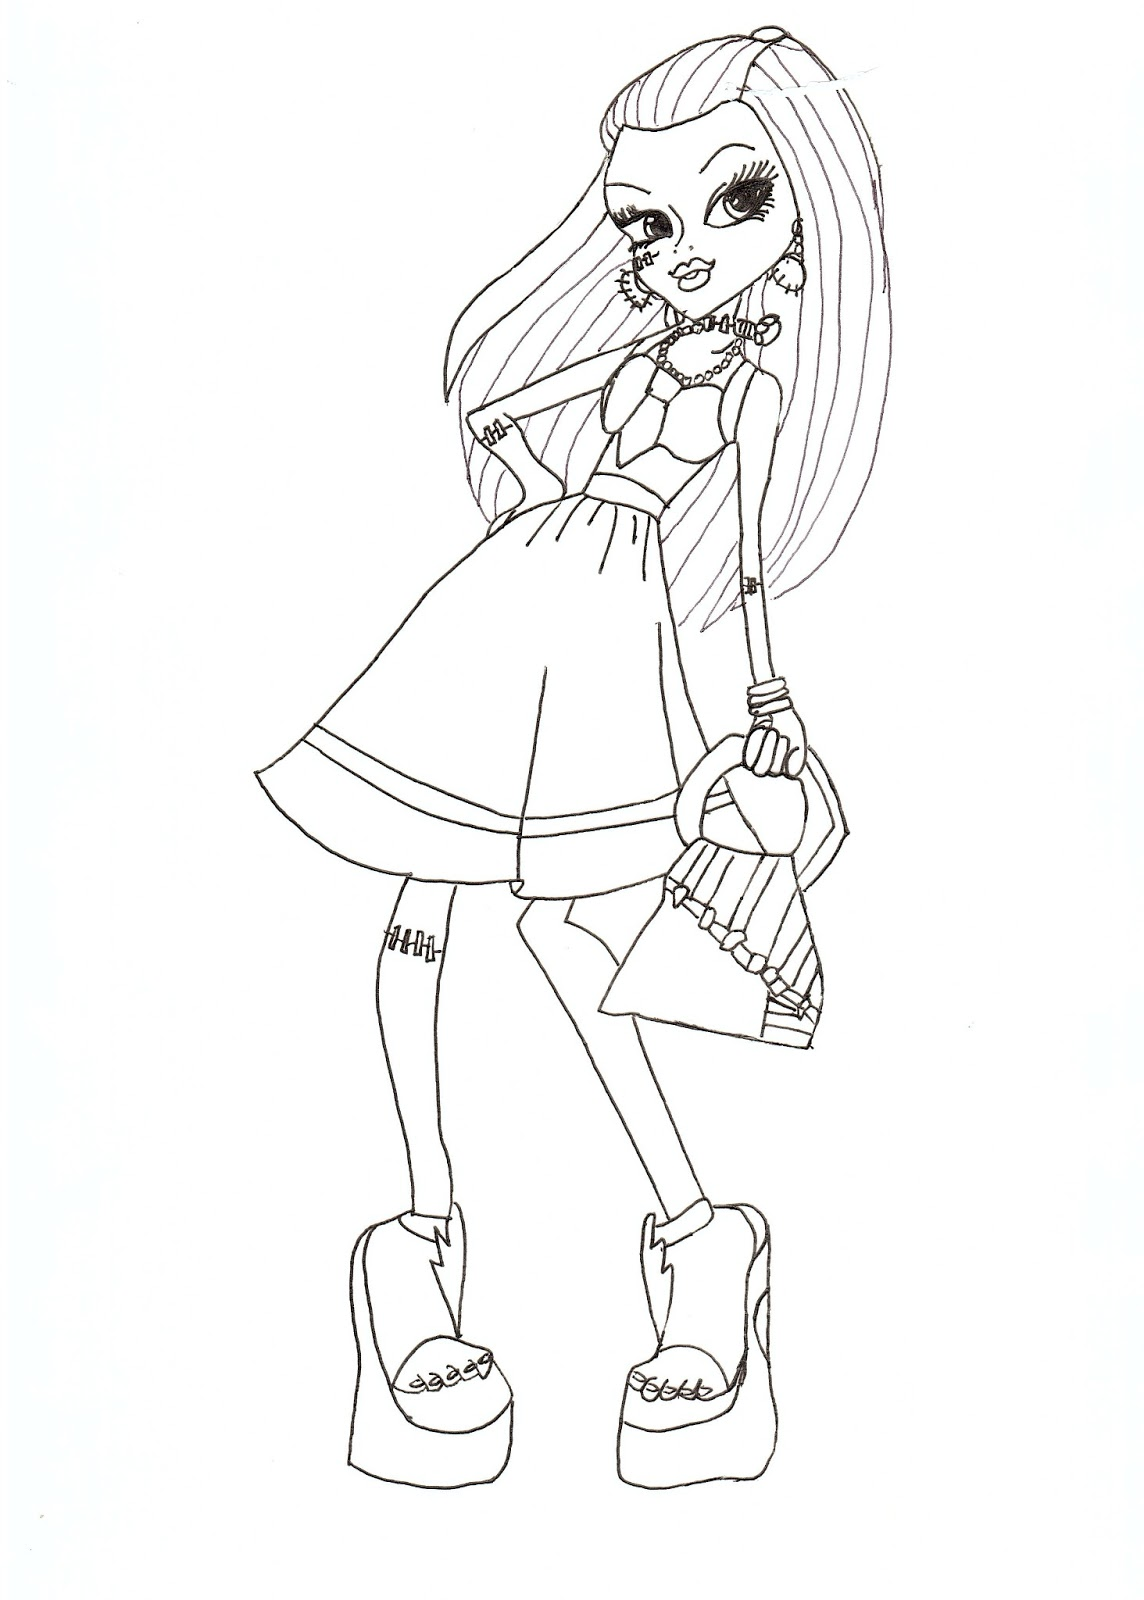 Frankie Fashion Coloring Sheet CLICK HERE TO PRINT Free Printable Monster High